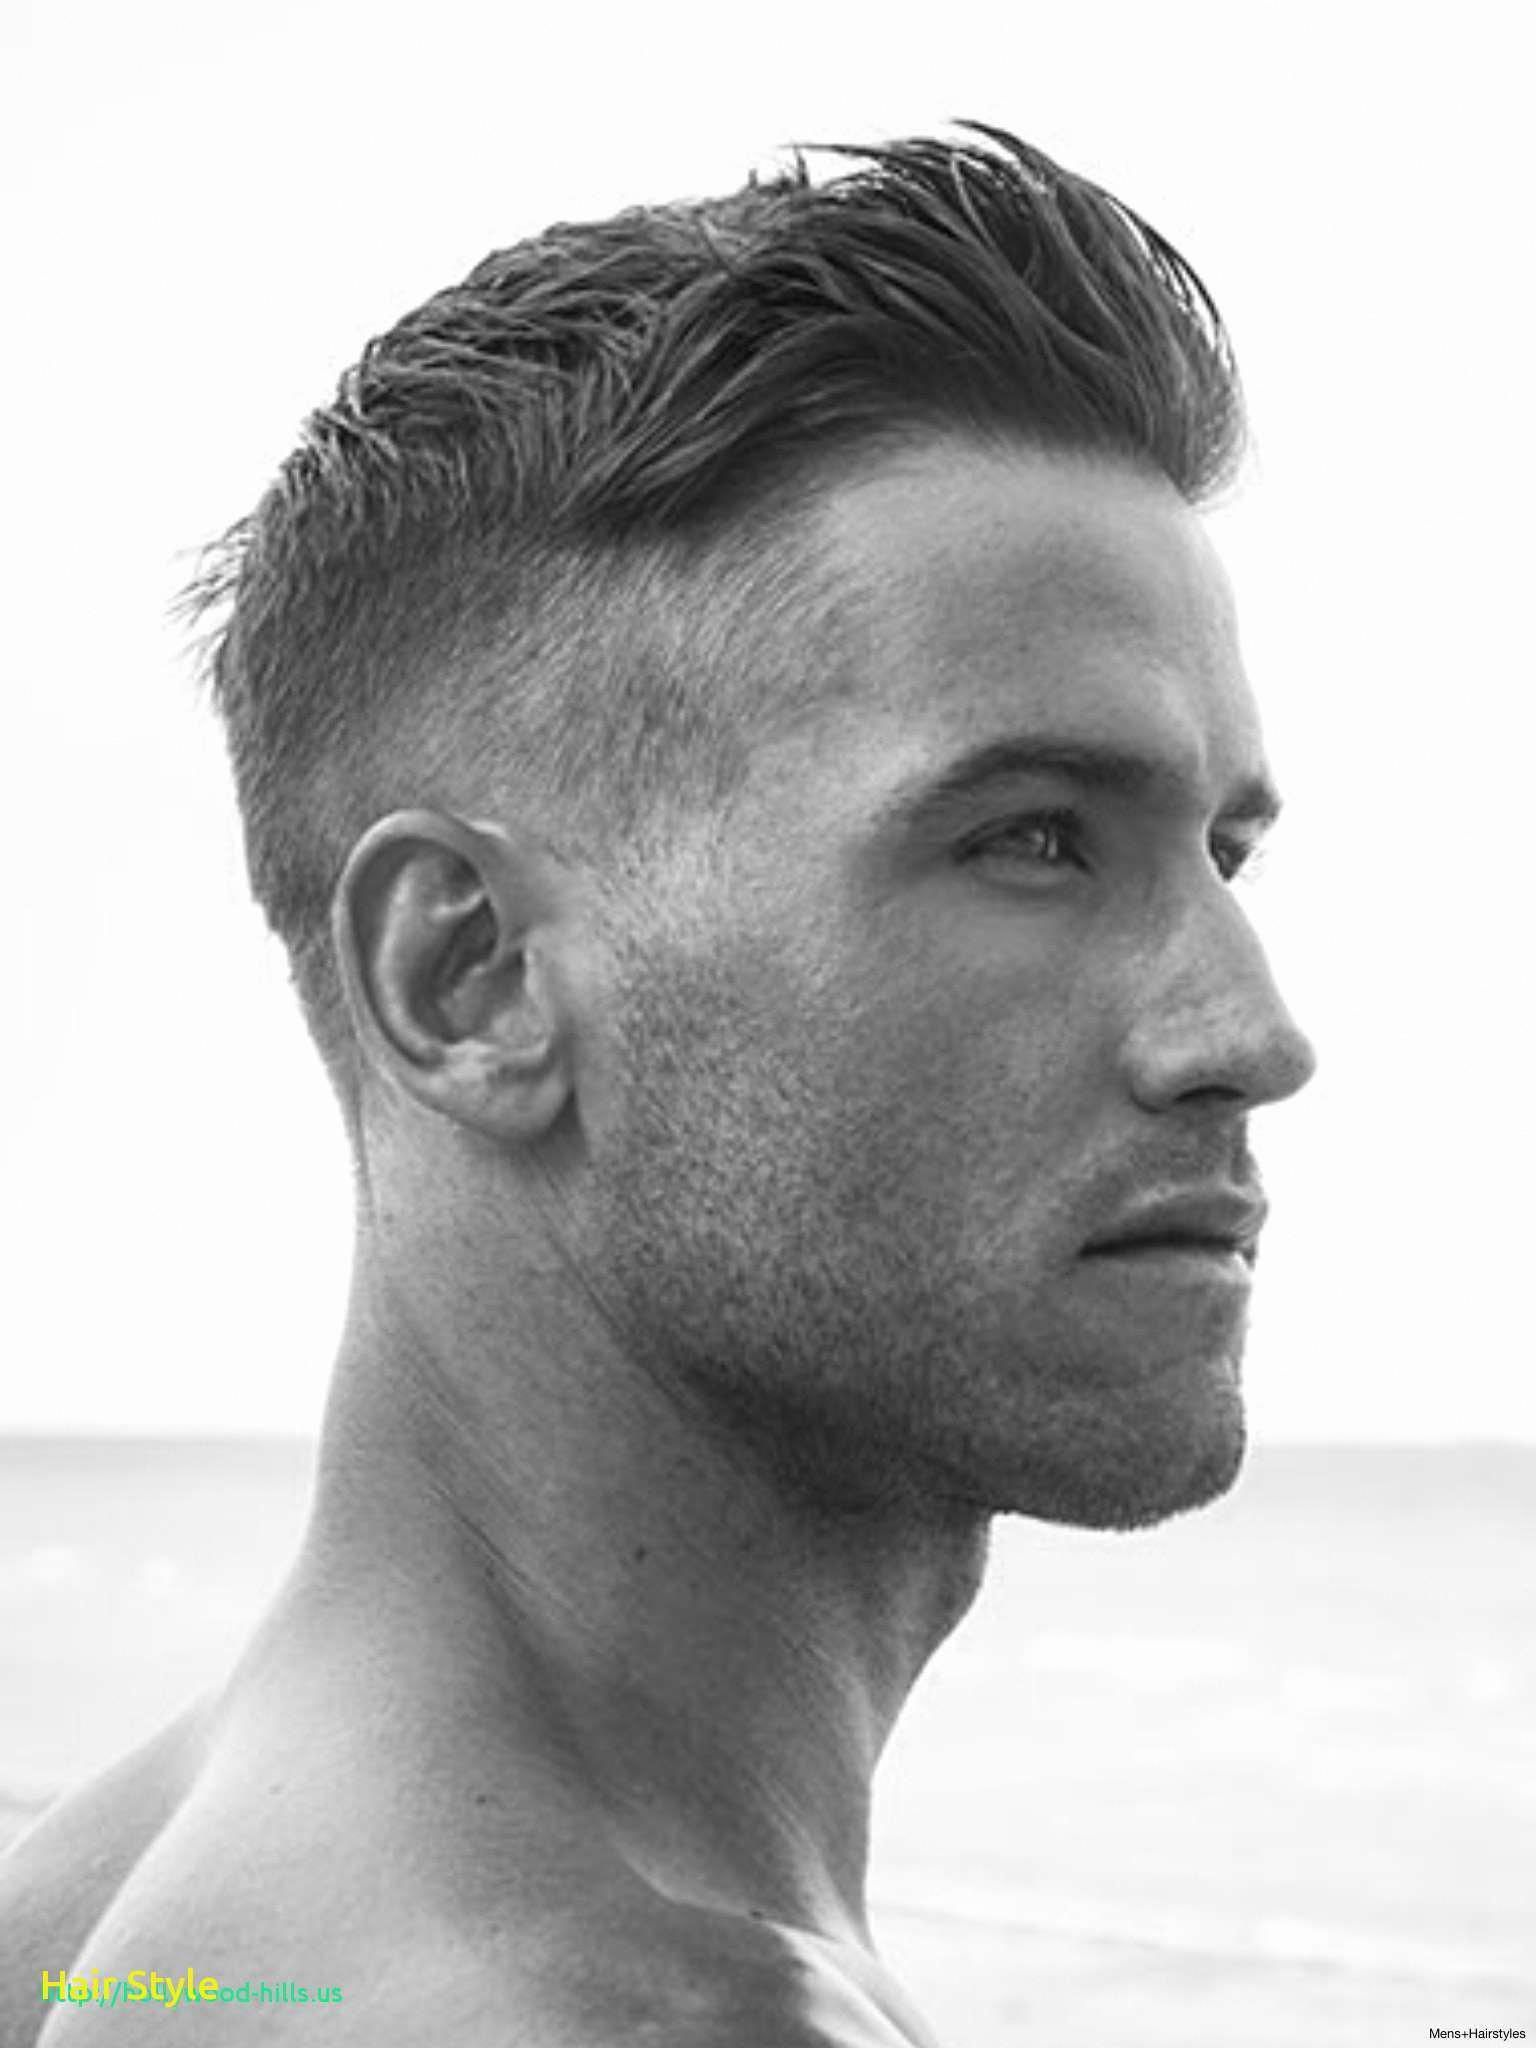 Awesome Best Mens Hairstyles Bestmenshairstyles Haircut For Thick Hair Mens Hairstyles Thick Hair Mens Haircuts Short